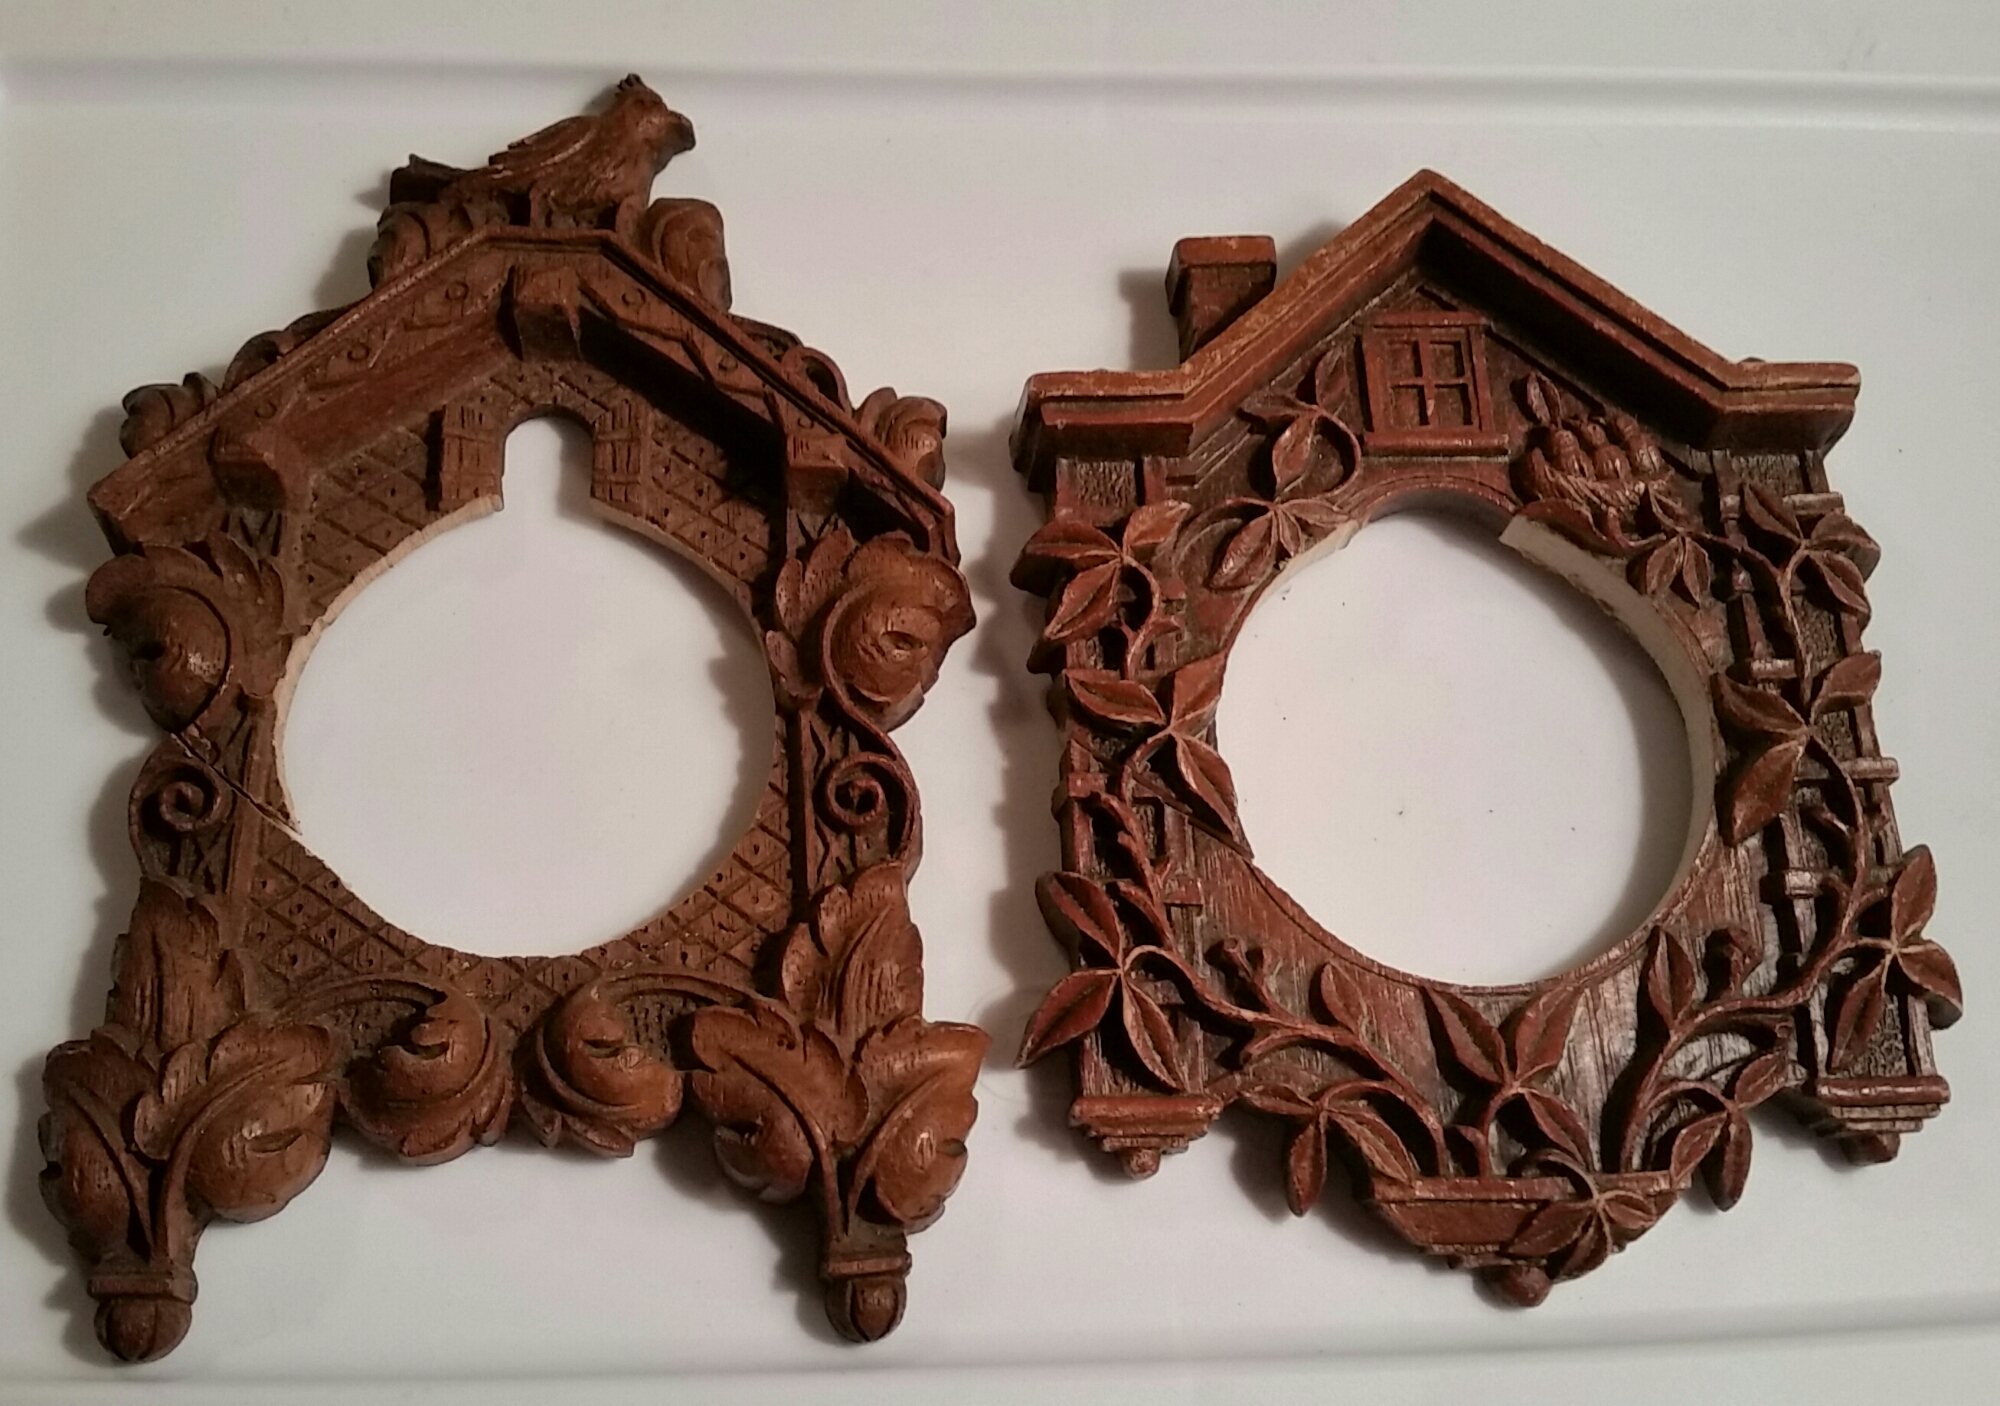 cuckoo clock : Spare Clock Parts for Antique and Vintage ...